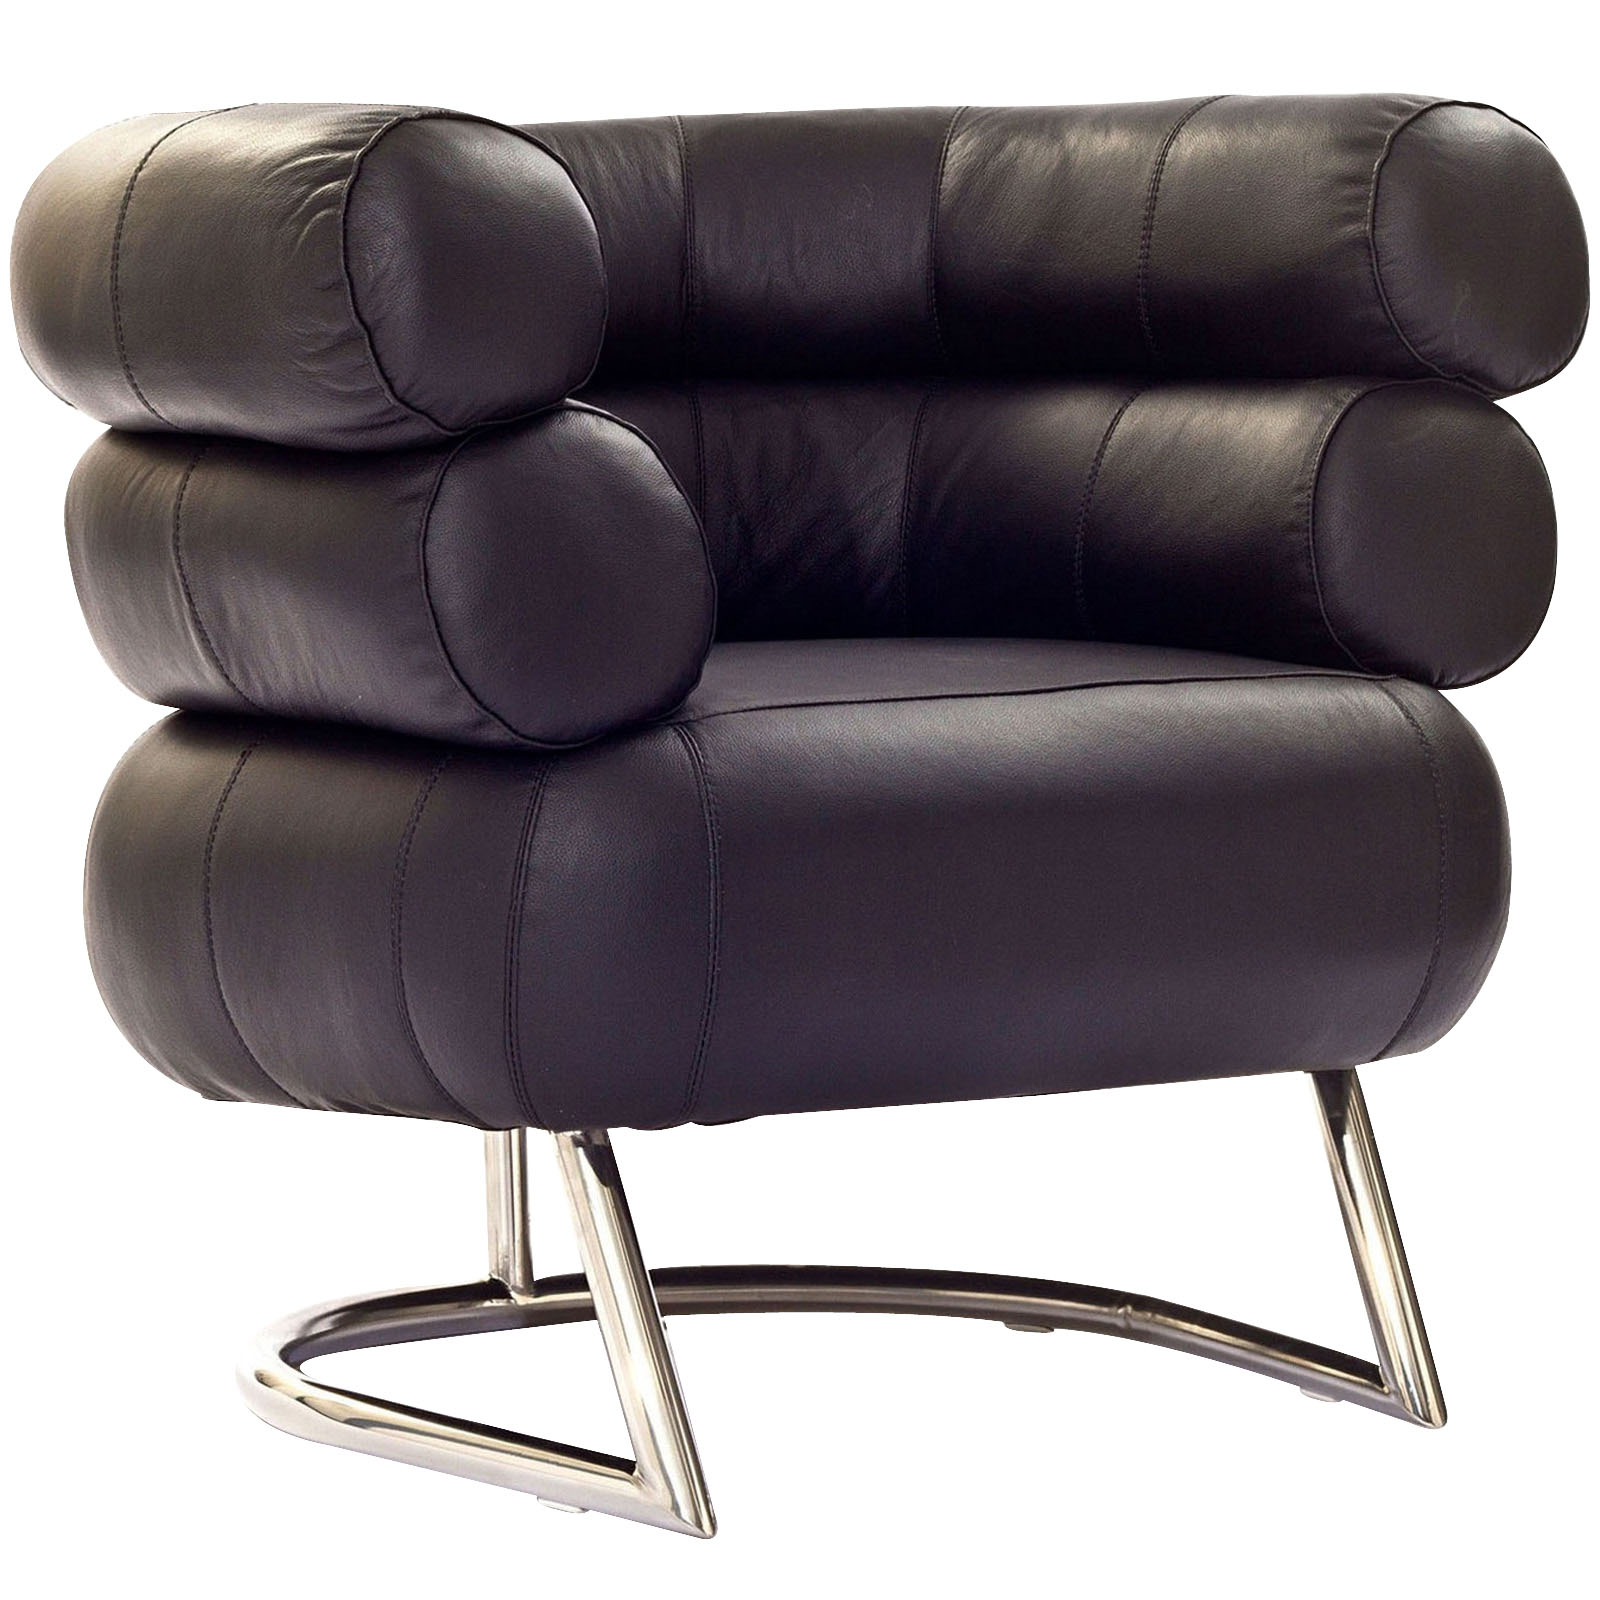 Bibendum Chair © www.lifestyleetc.co.uk